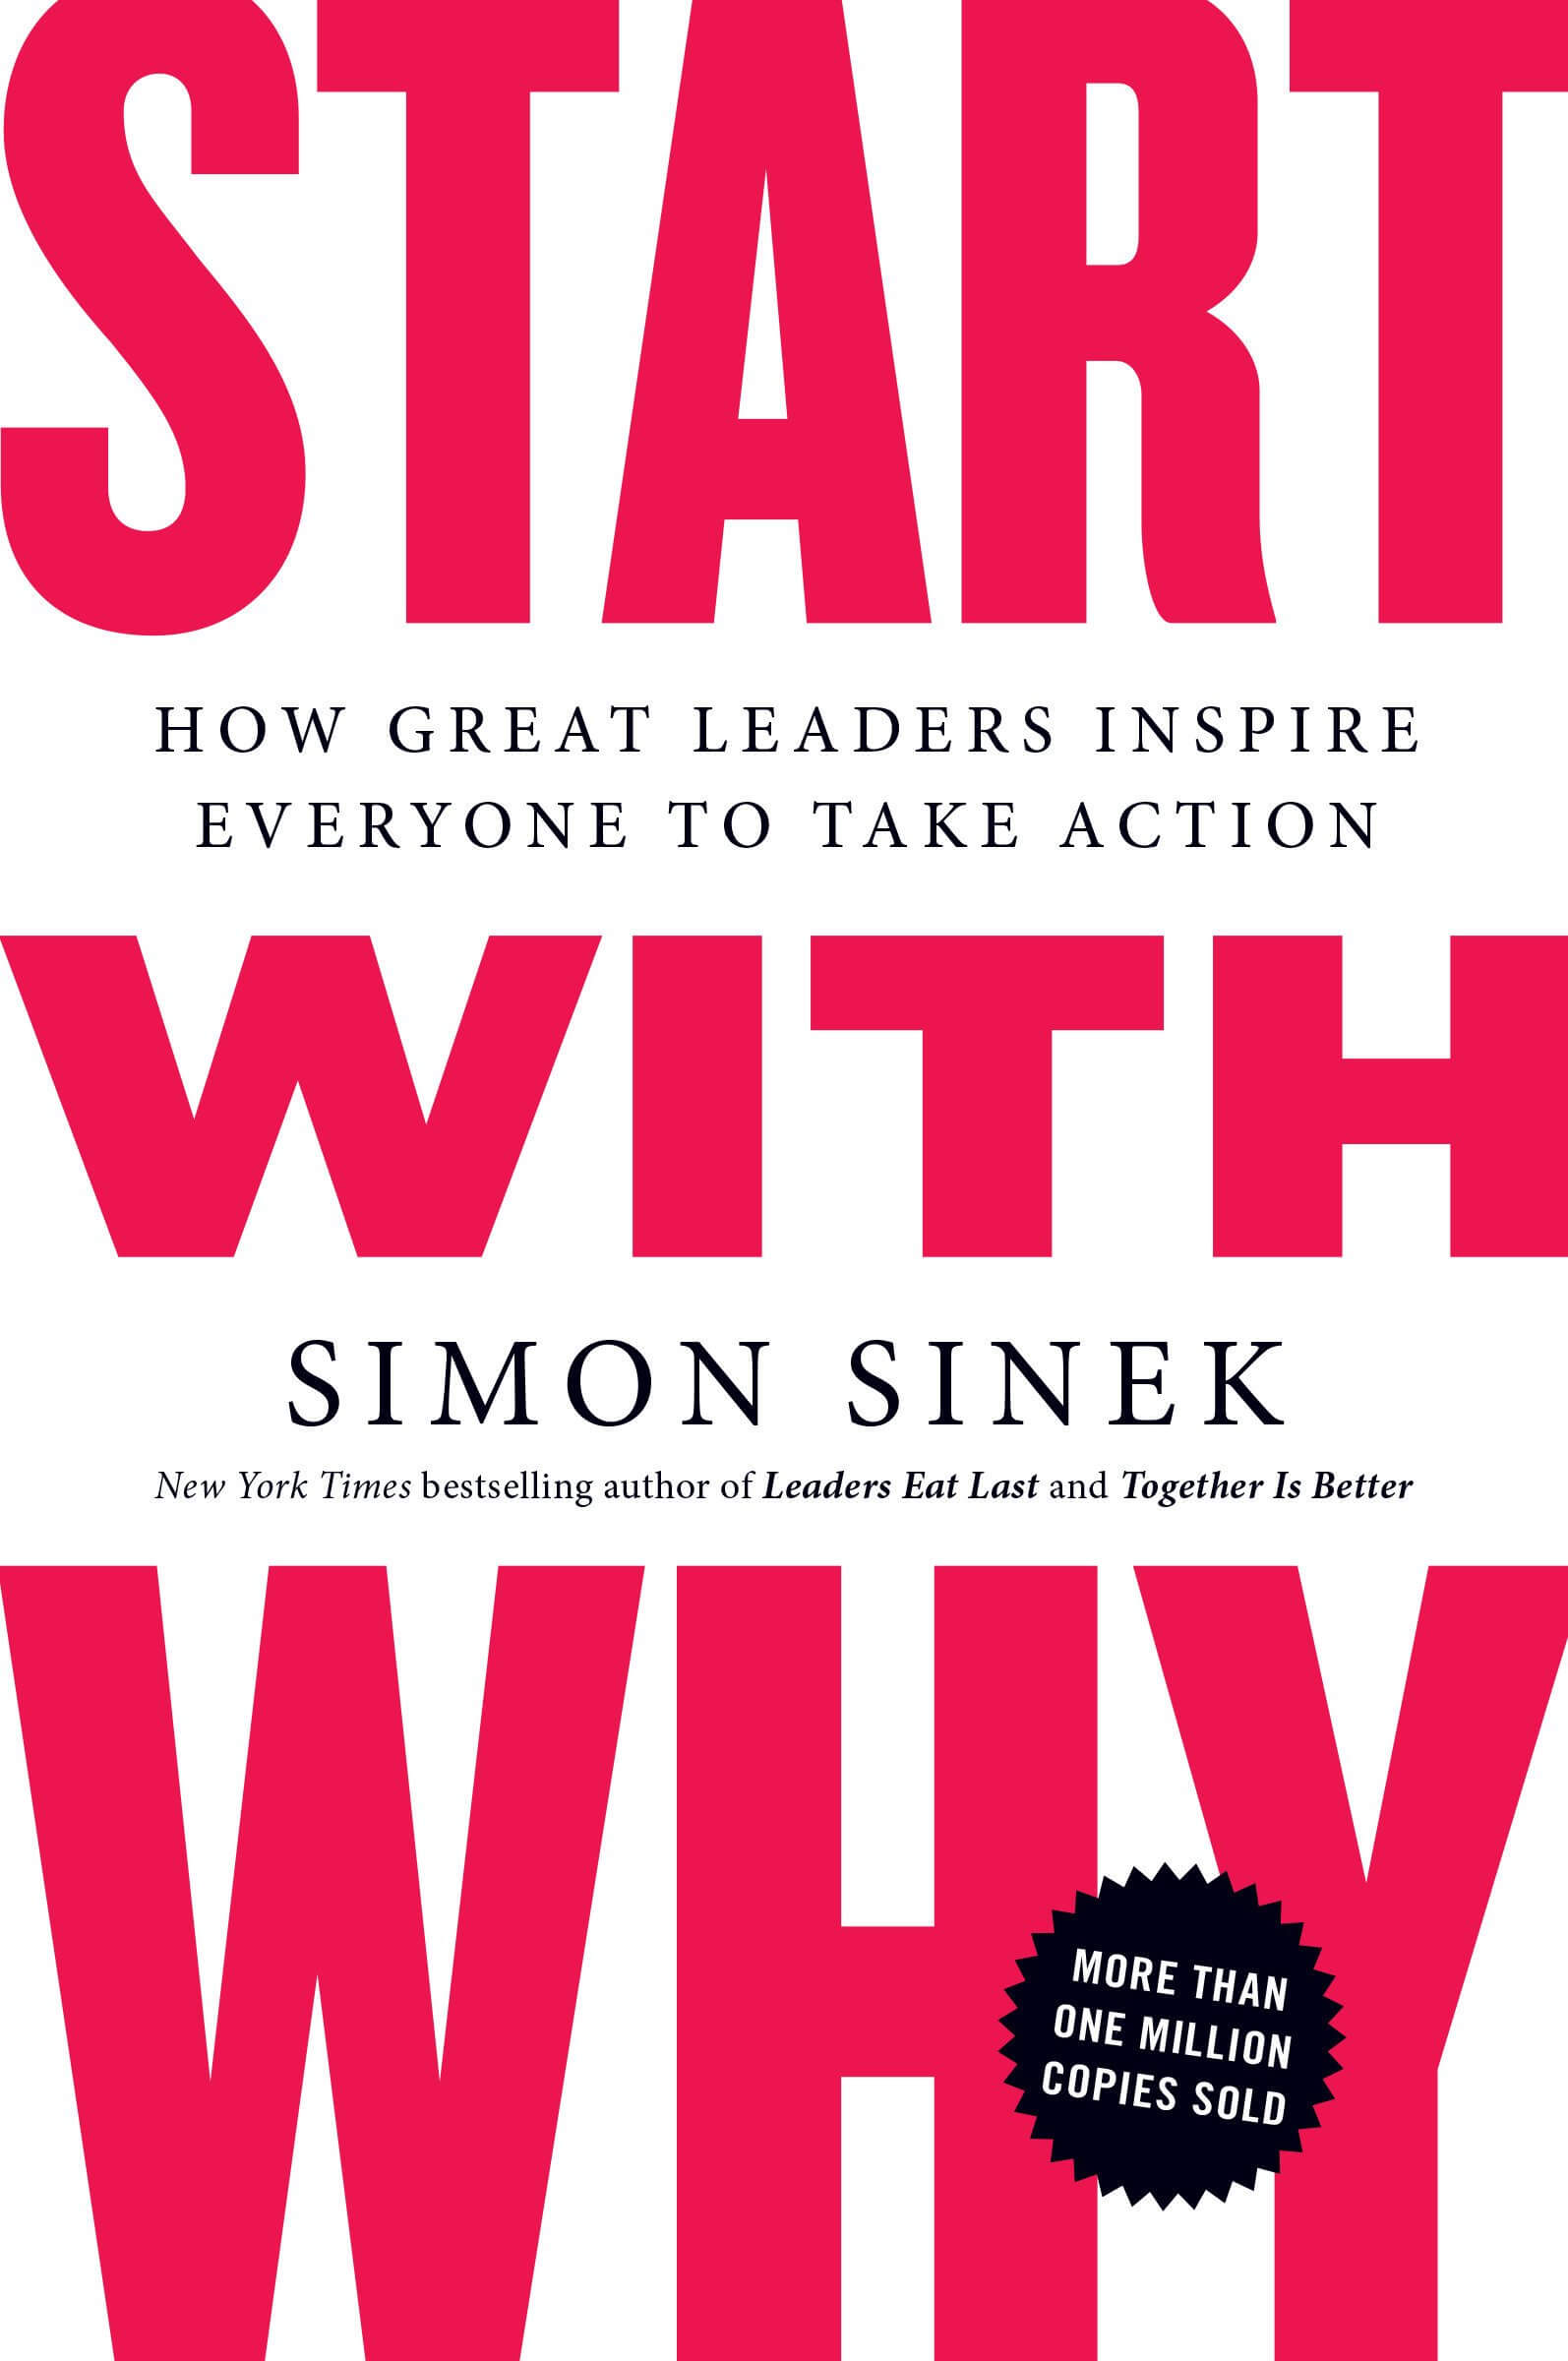 Start-with-Why- How-Great-Leaders-Inspire-Everyone-to-Take-Action-simon-sinek